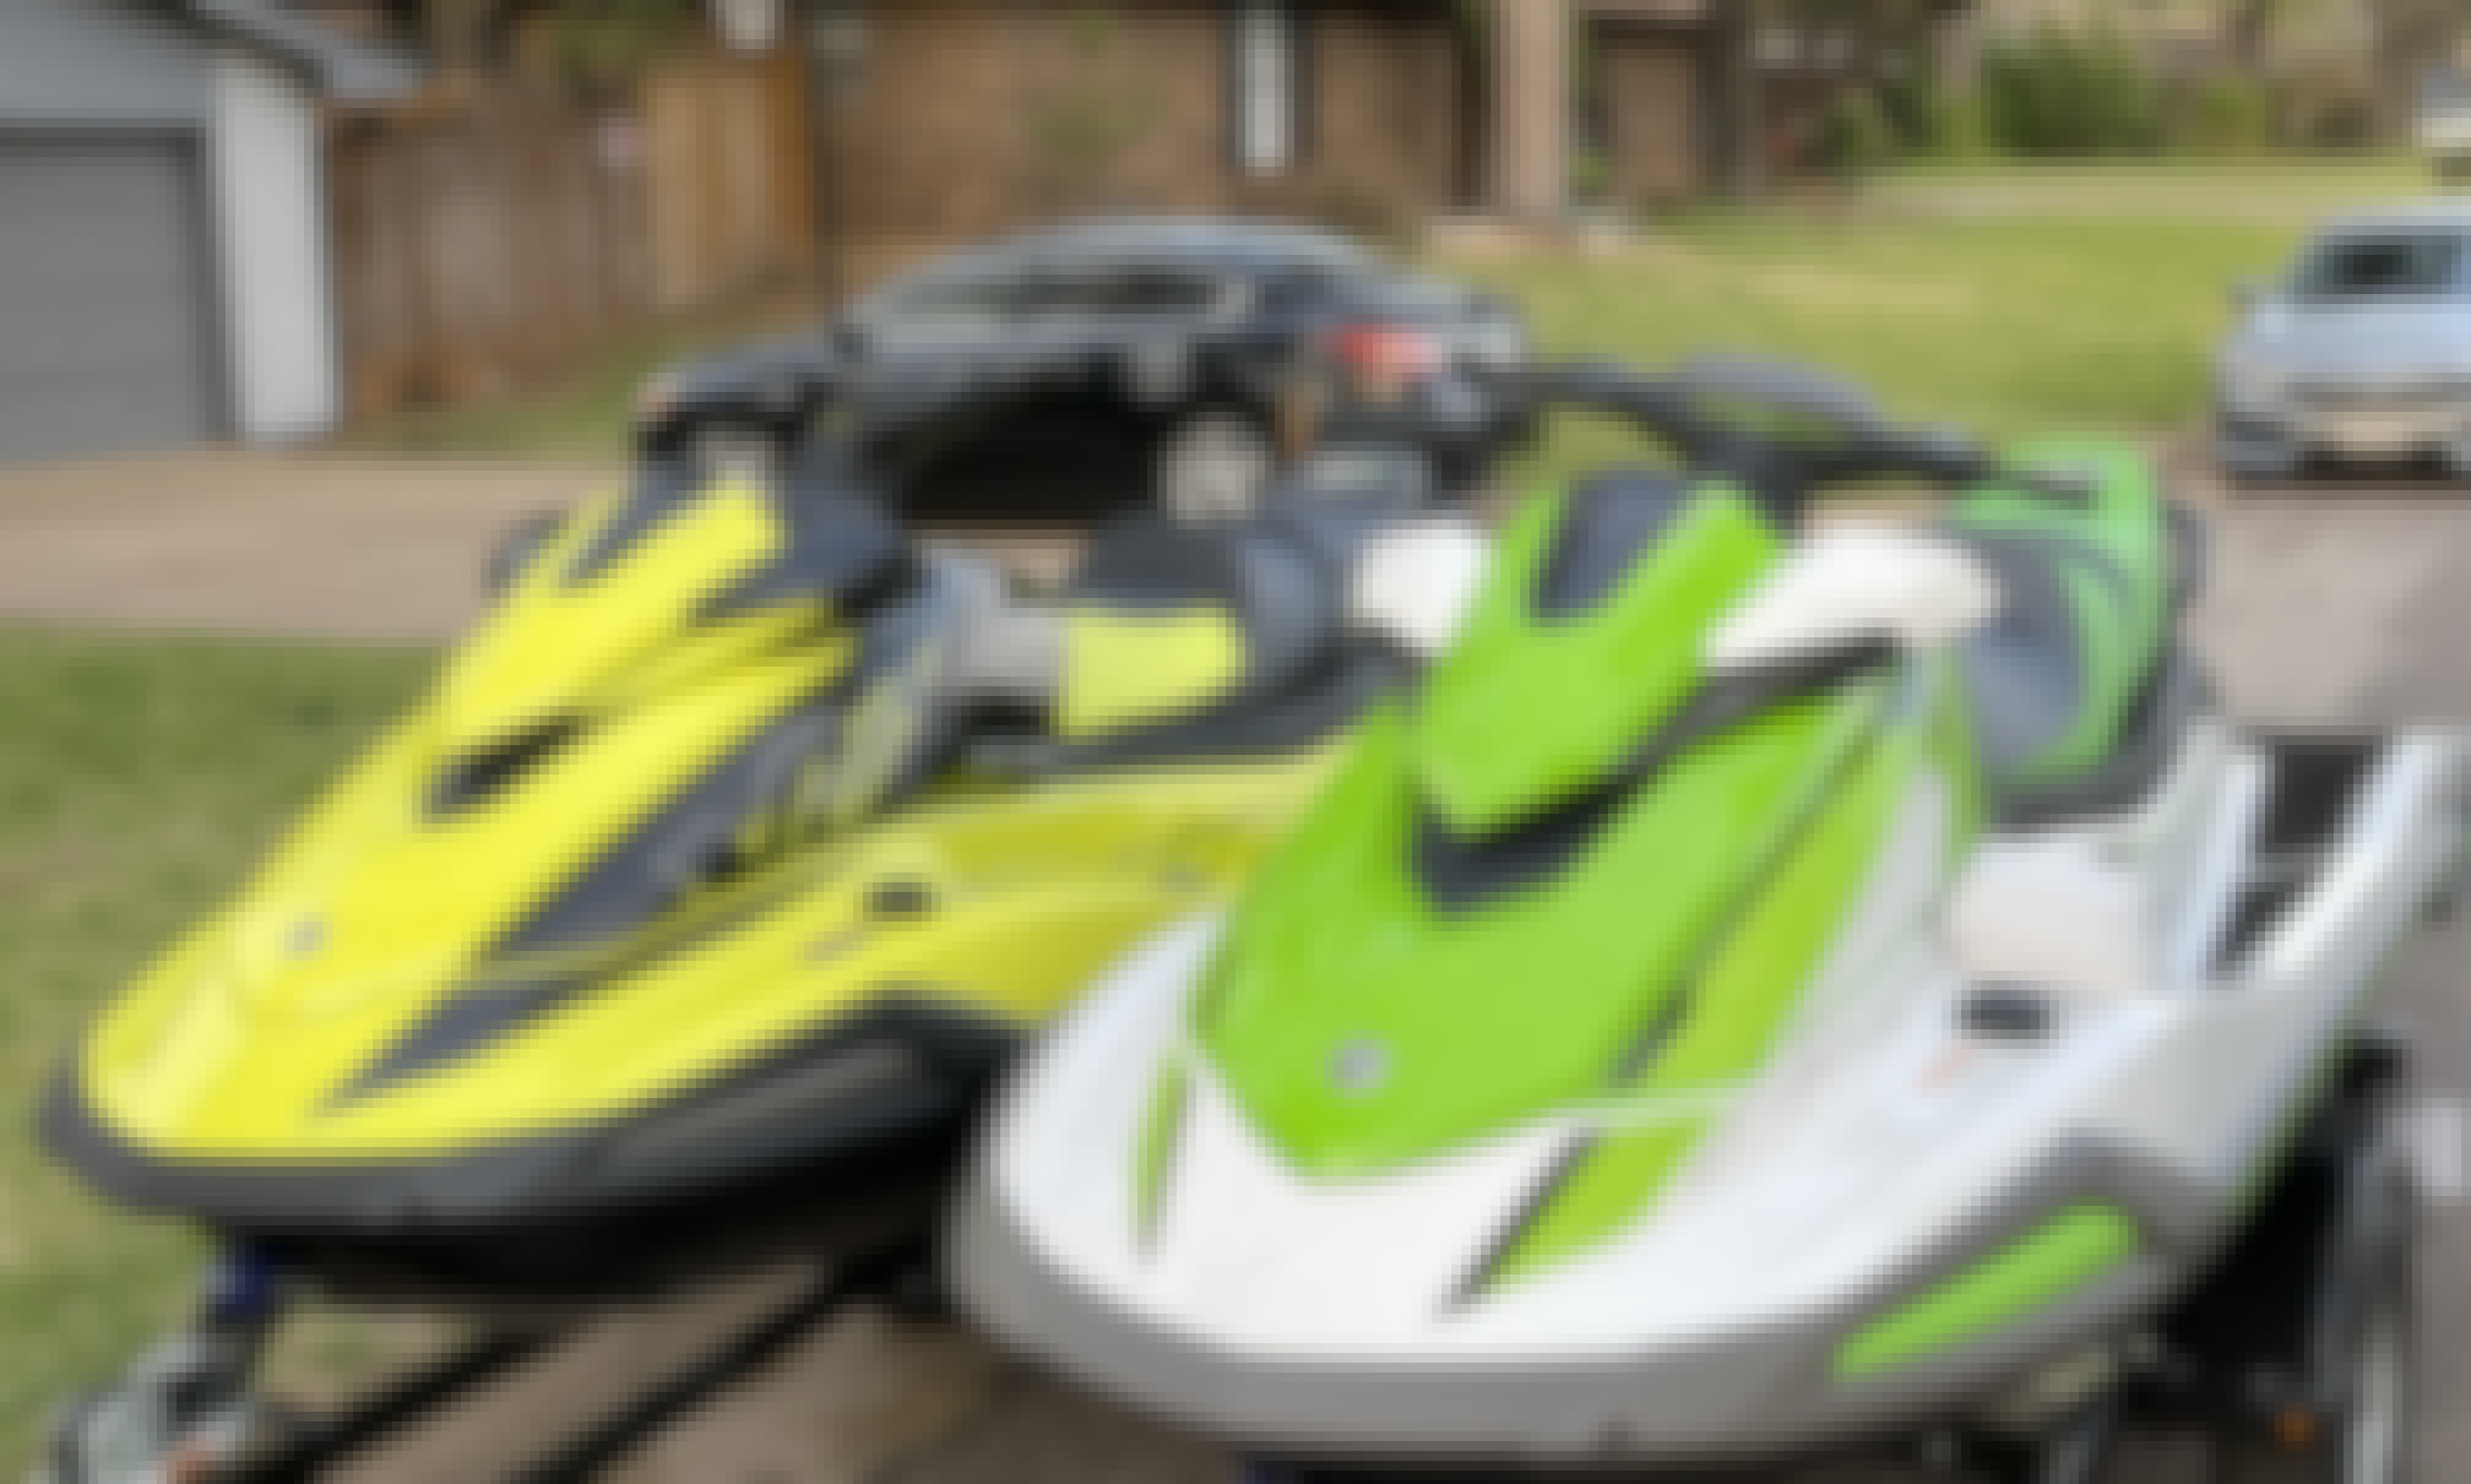 2021 Yamaha Waverunner Jet Skis For Rent x 2 | Lake Arlington